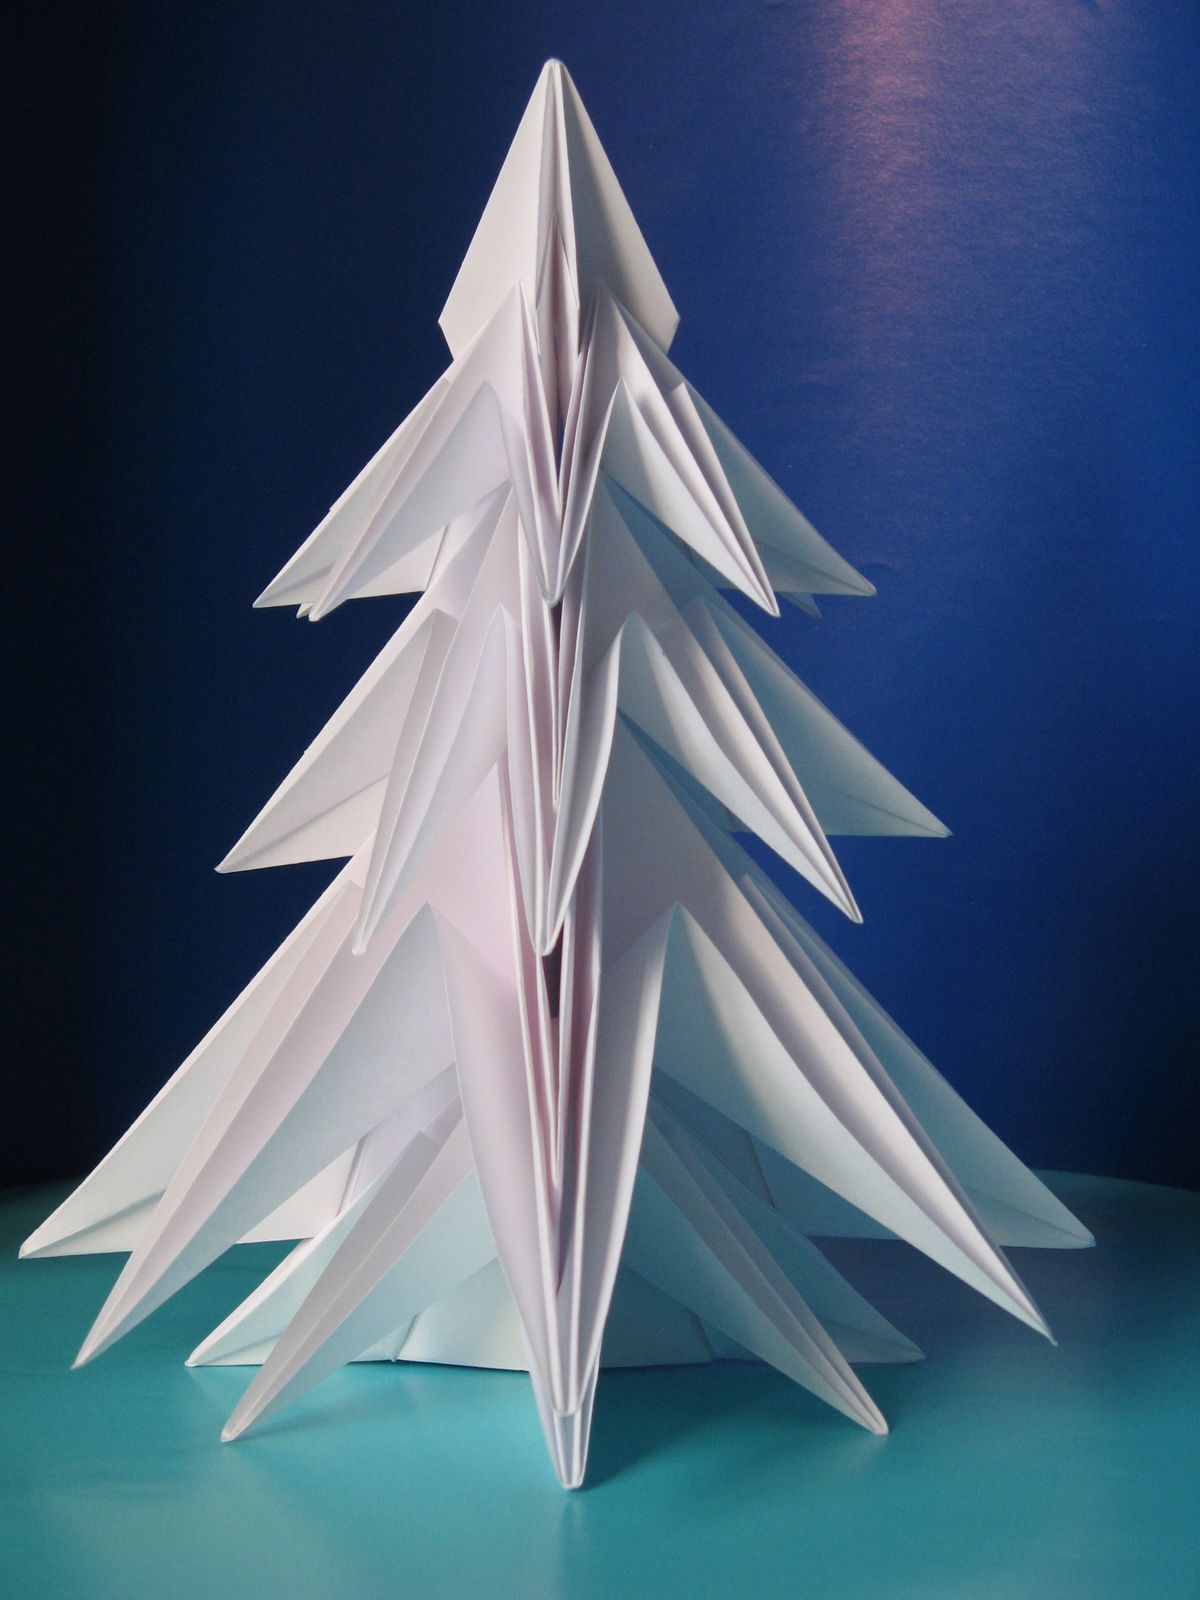 origami Abete 2 - Fir tree 2 by Francesco Guarnieri